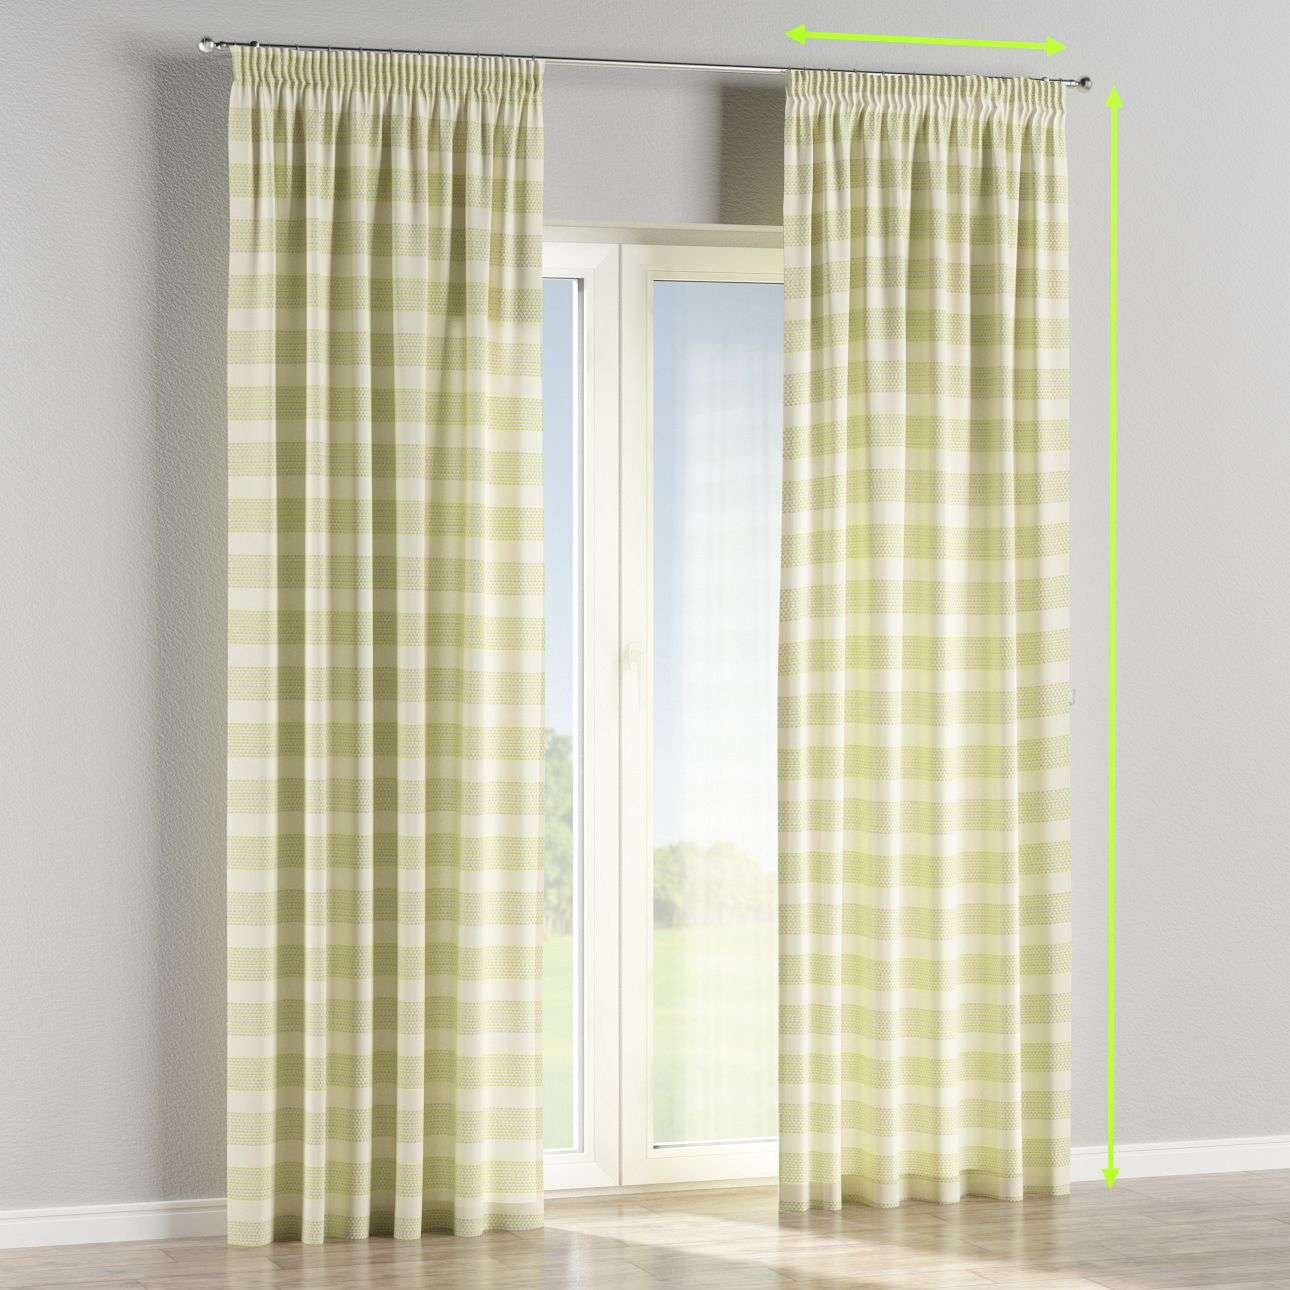 Pencil pleat lined curtains in collection Rustica, fabric: 140-35